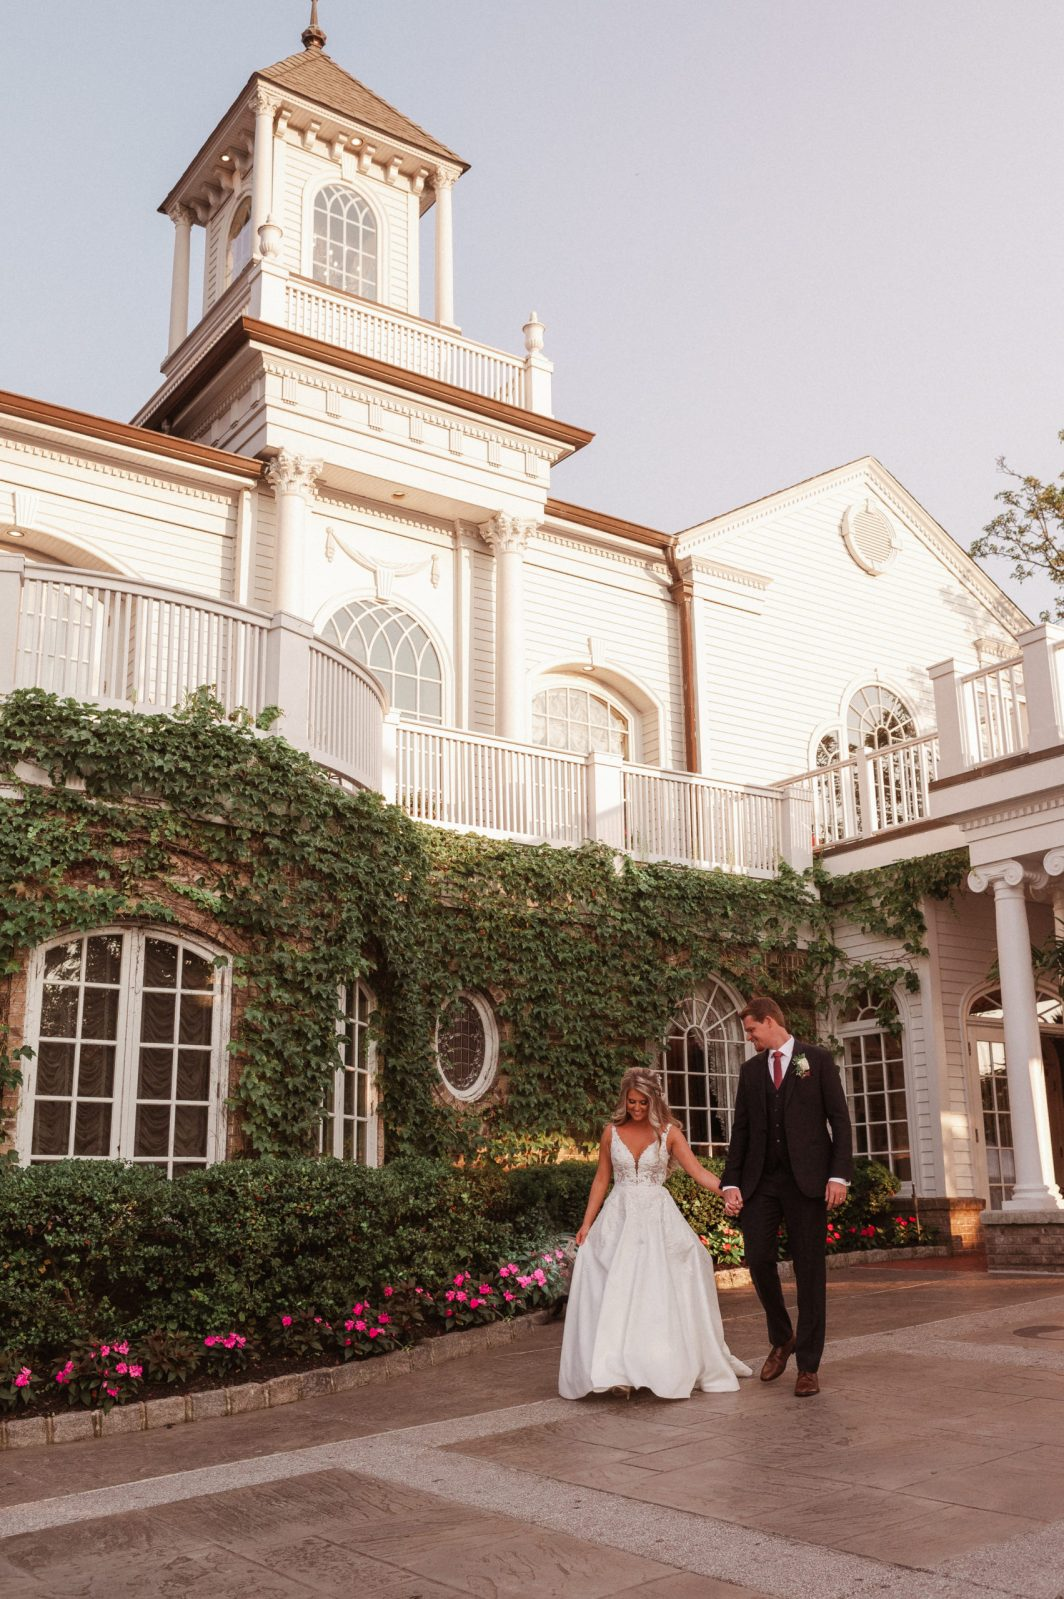 fairytale-wedding-photos-at-the-brownstone-nj-photographer-suess-moments